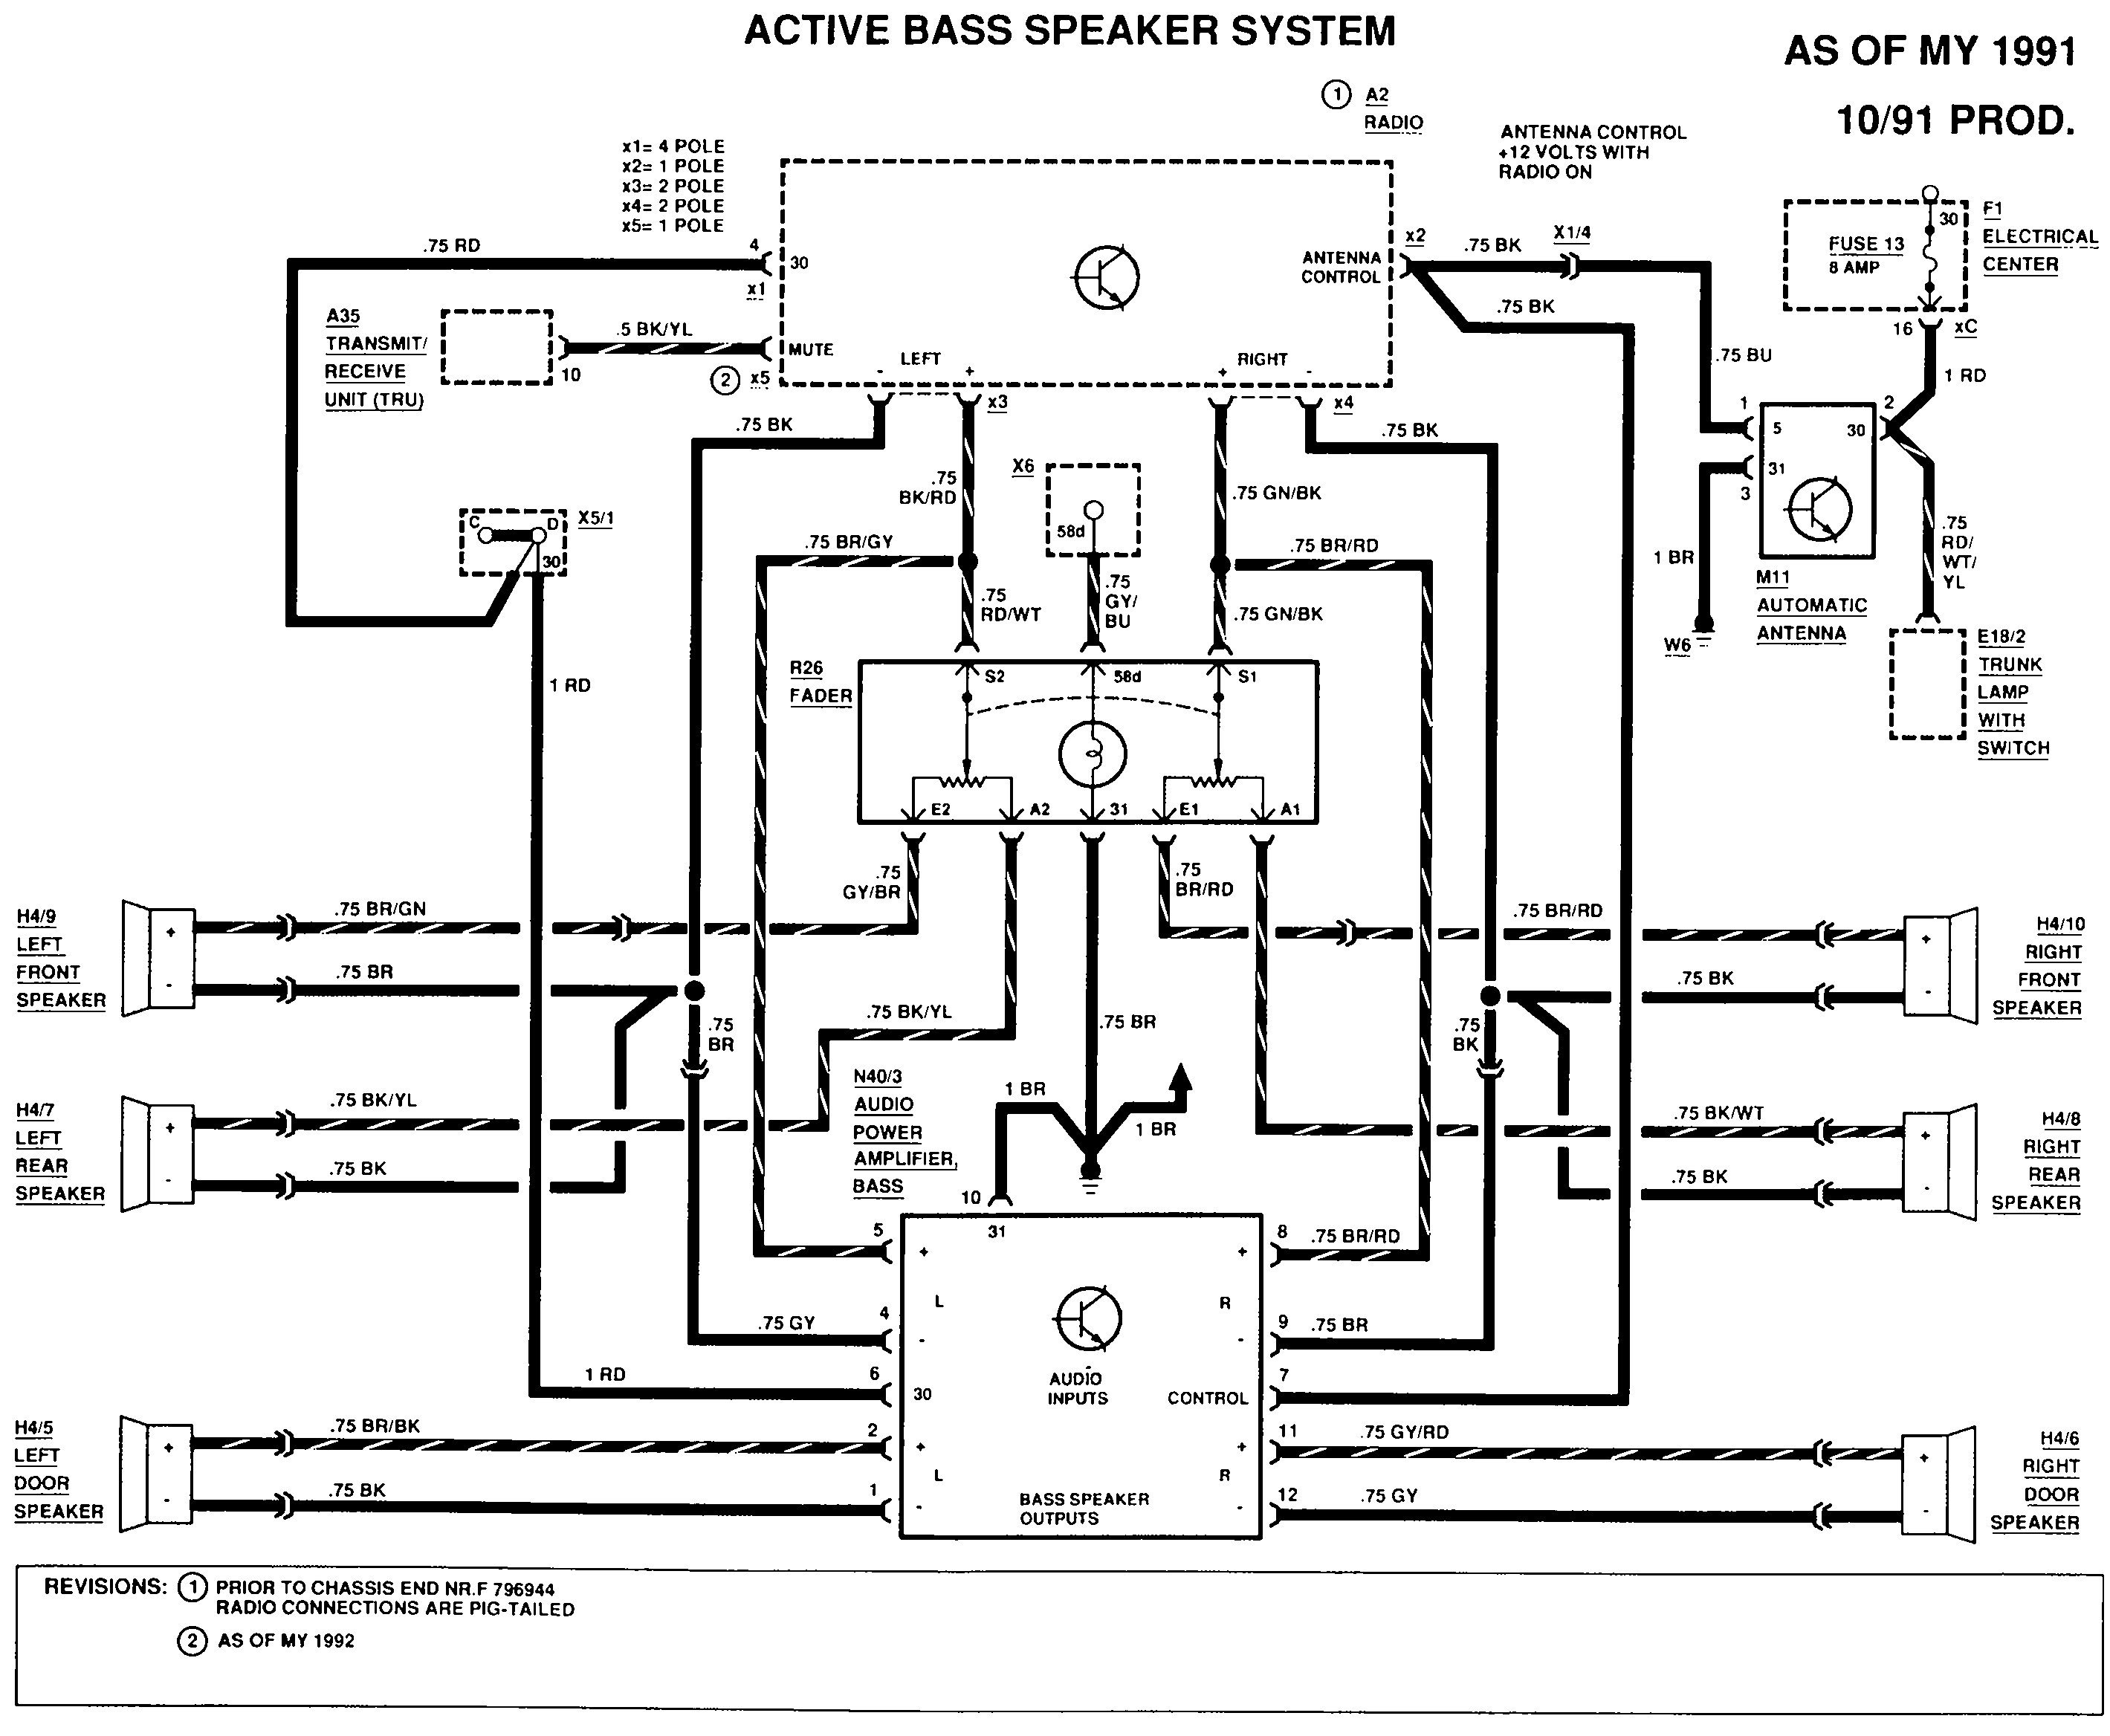 1993 mercedes 300e radio wiring diagram i have a 1993 mercedes benz 190e 2.3 and it has a 6 tape ... 1993 ford f250 radio wiring diagram